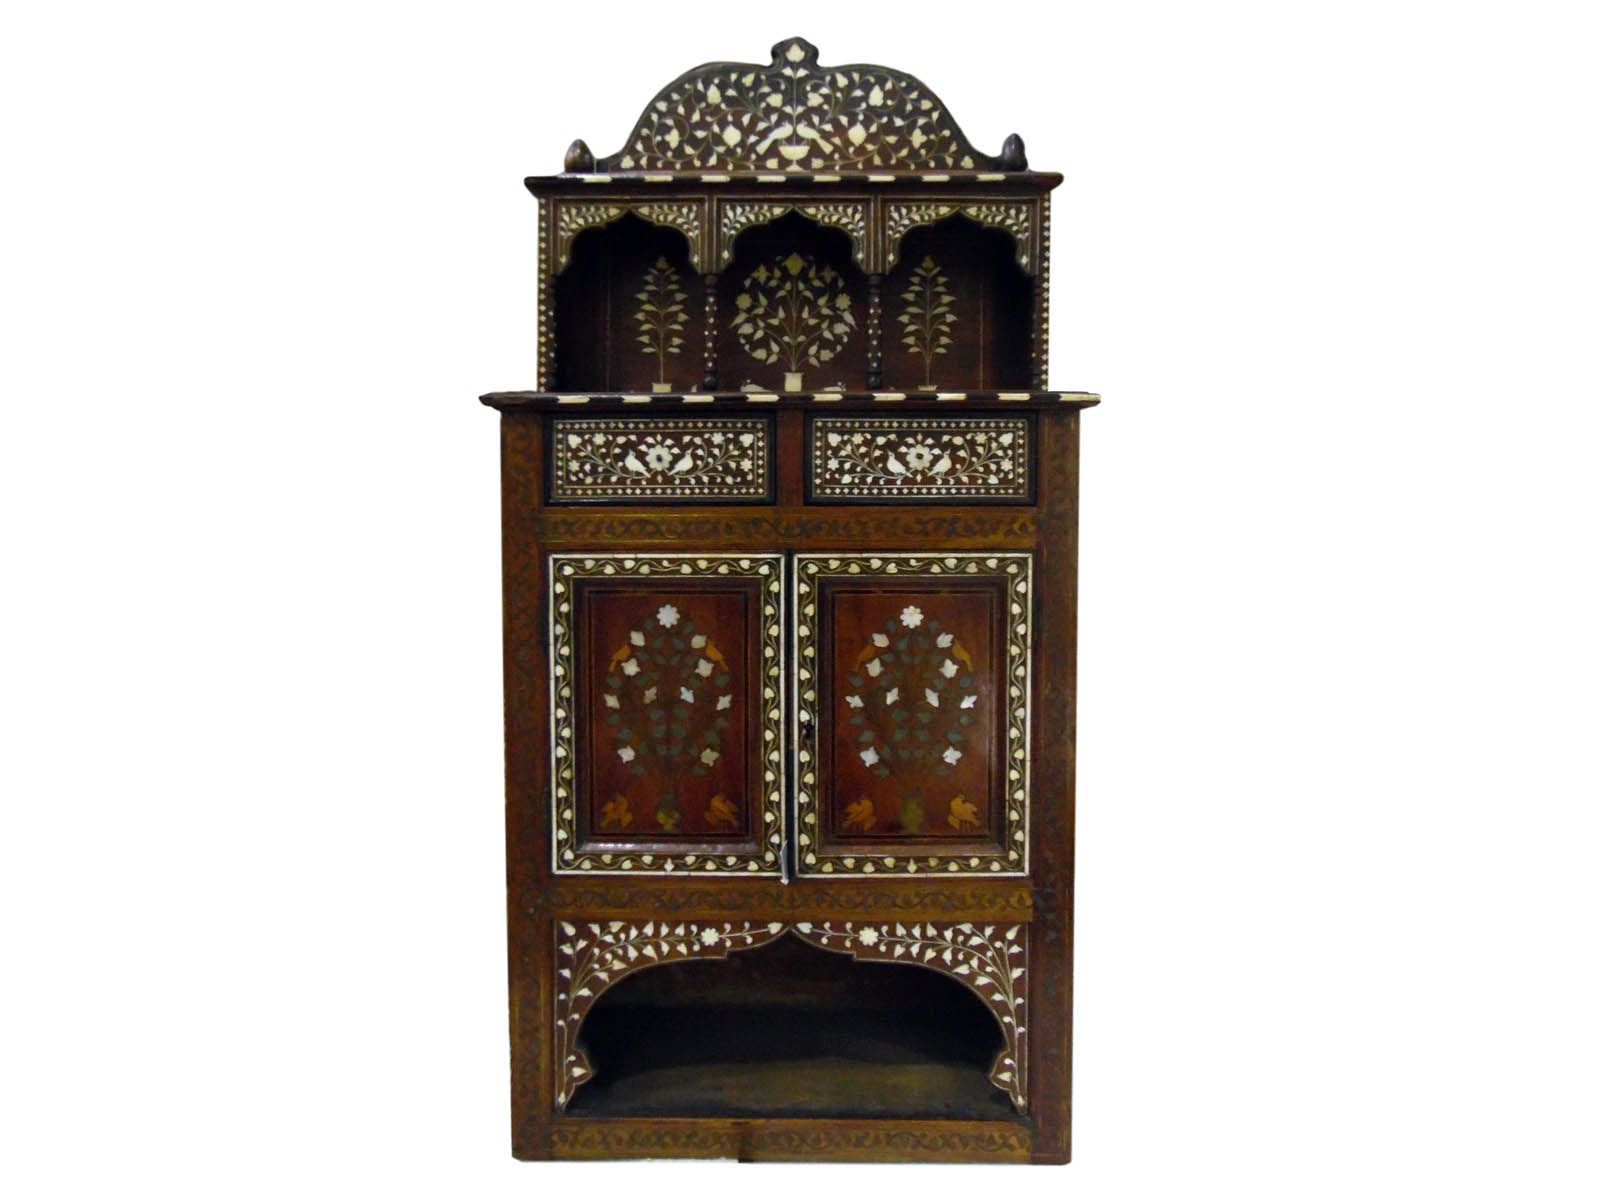 The-Cotswold-Auction-Company-19th century Indian travelling vanity cabinet sold for £1,150